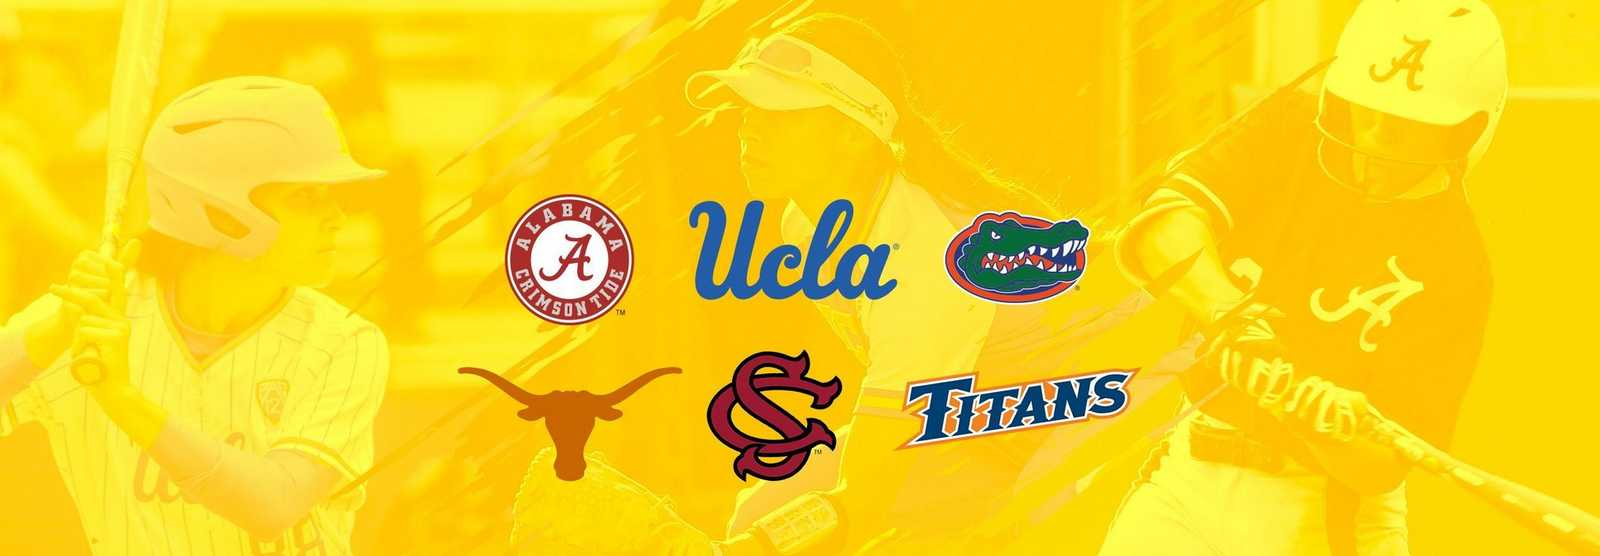 elite-college-softball-programs